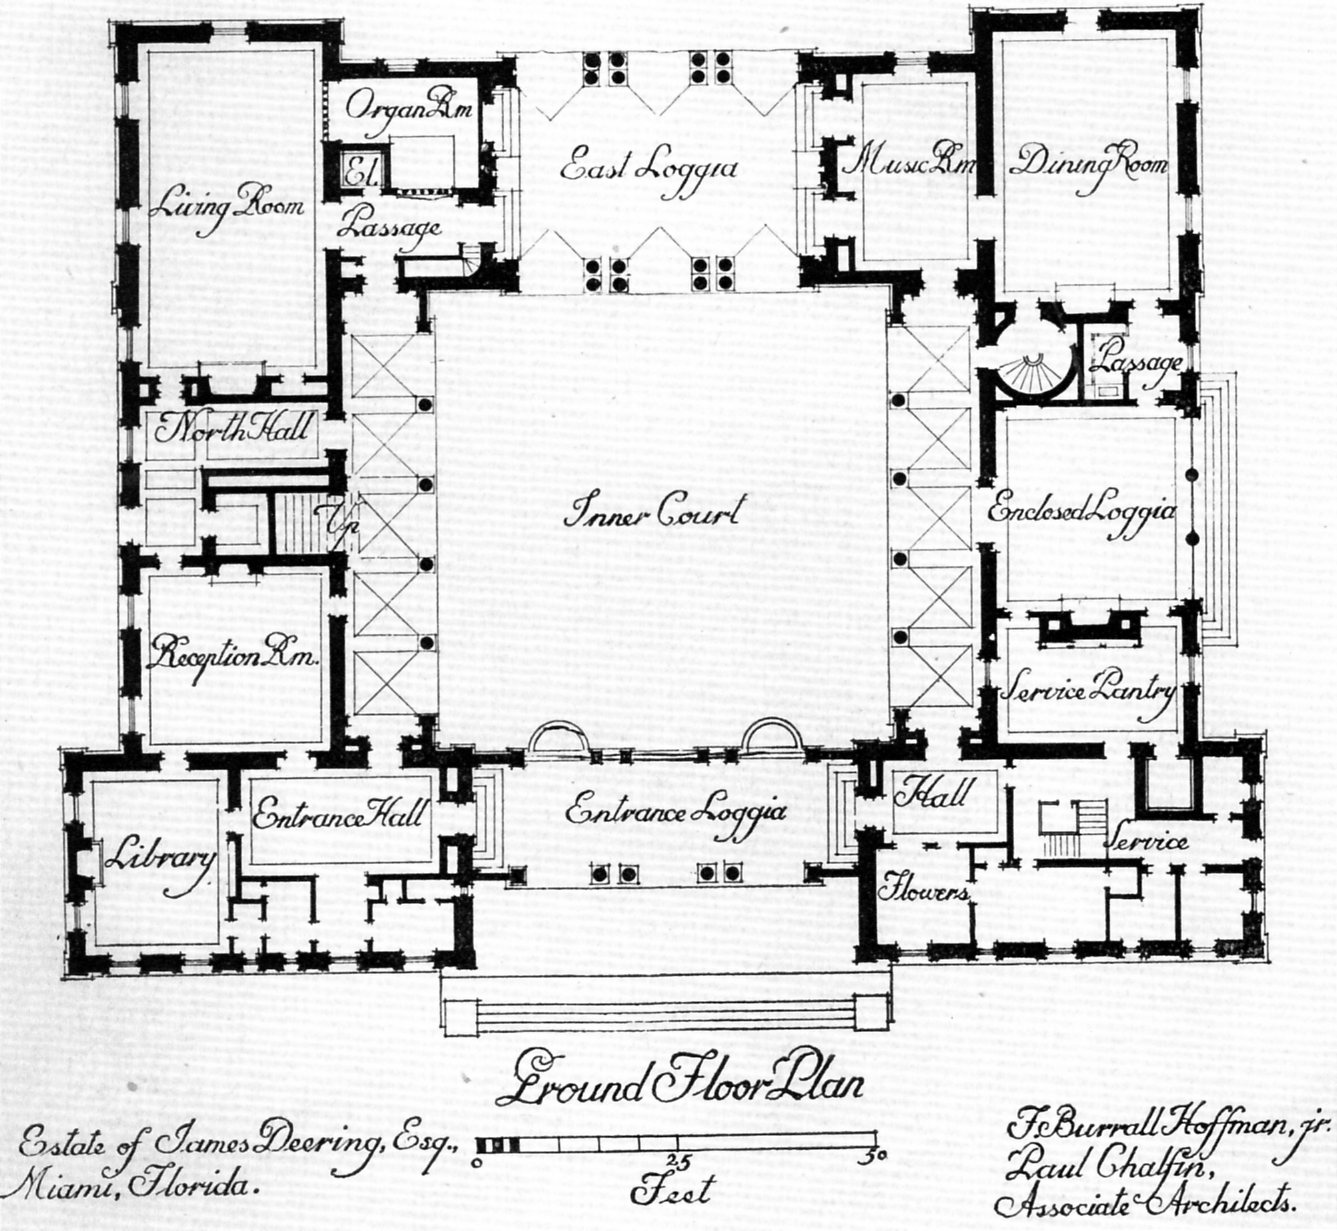 Central courtyard house plans find house plans Spanish style house plans with central courtyard